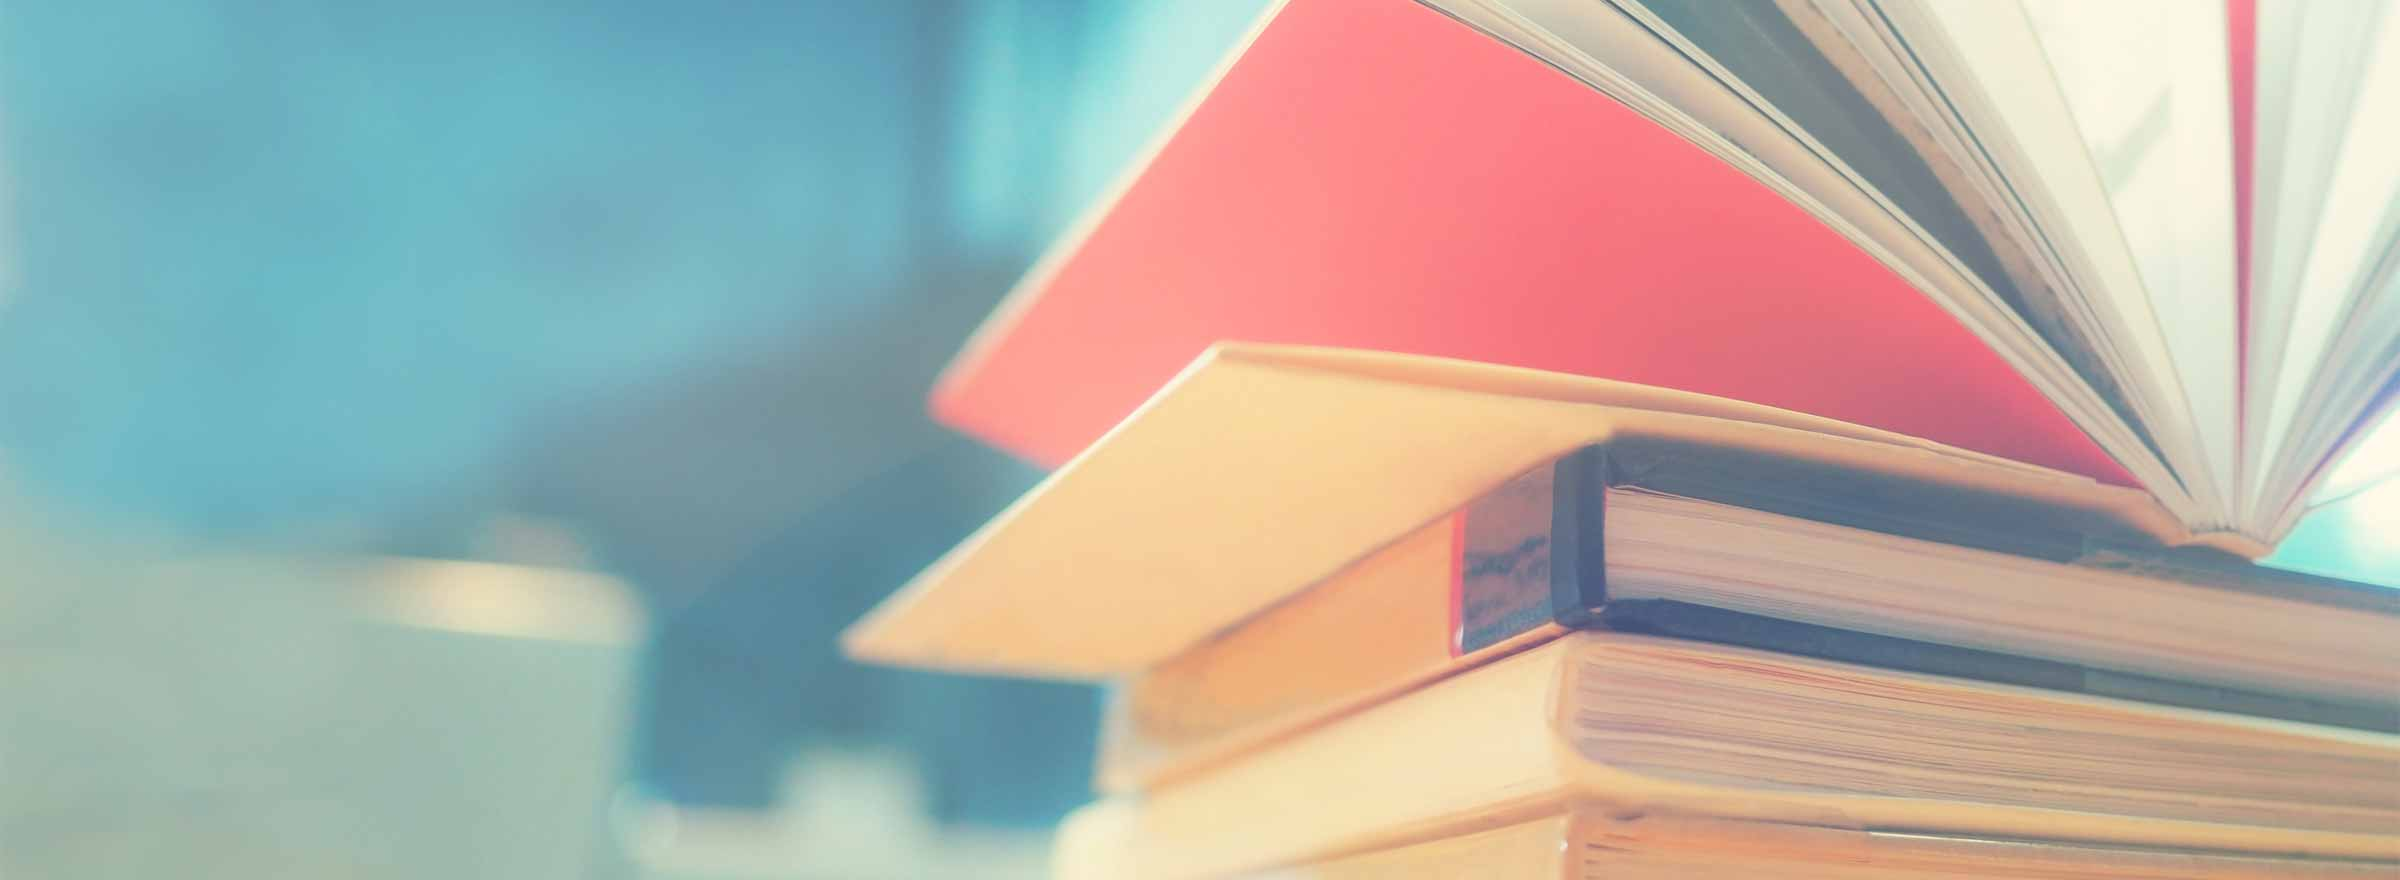 stack of books, the top one open